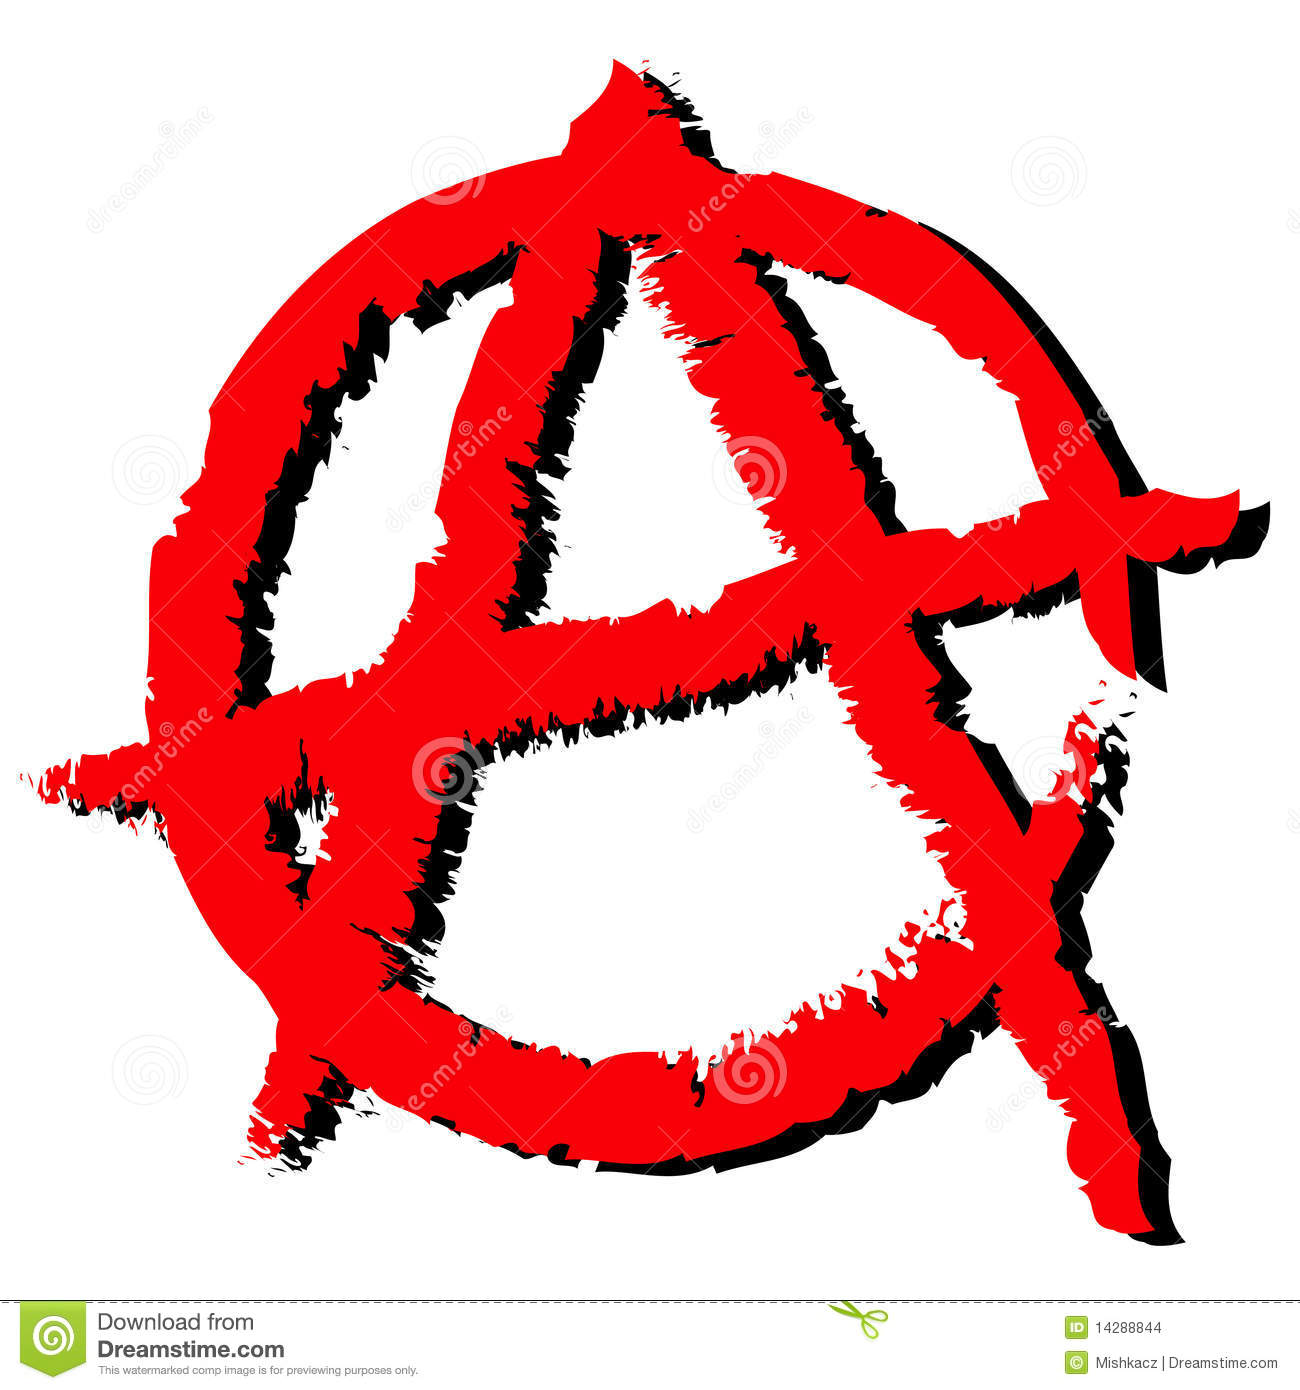 How to Be an Anarchist